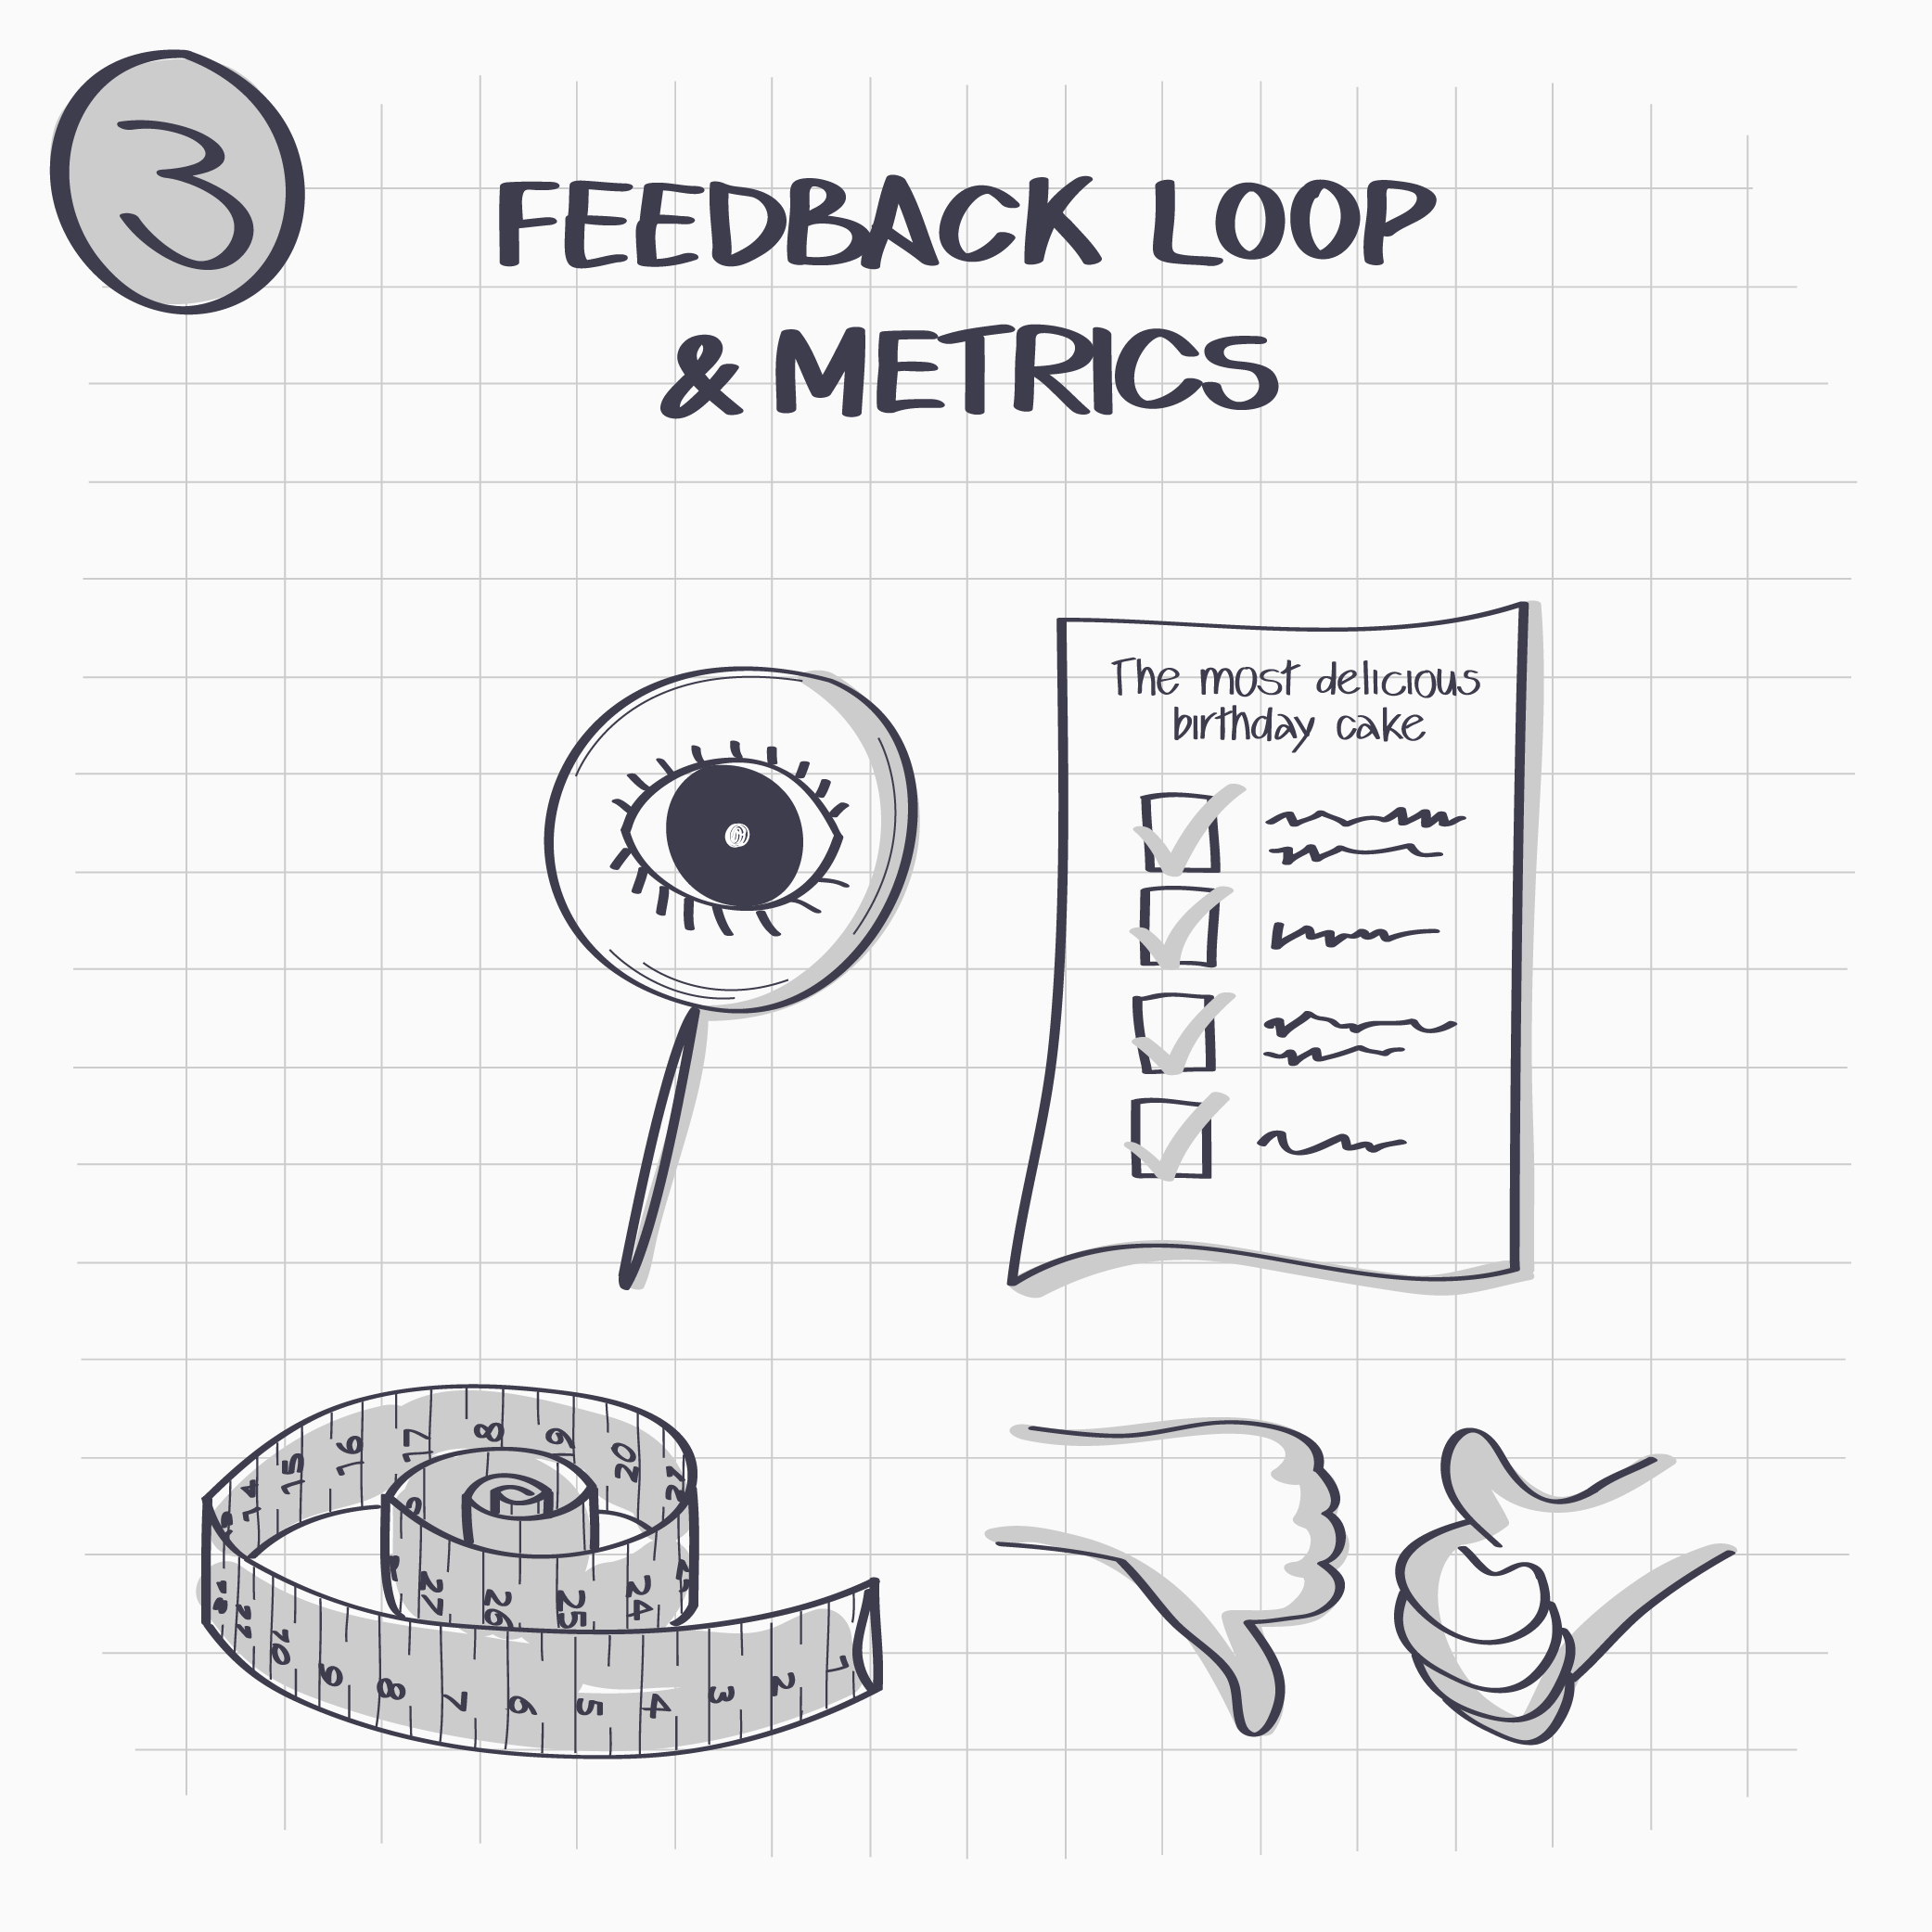 3. For each of those areas create a feedback loop and collect metrics – how well is it working on a scale from 1-10 and needs to be improved.